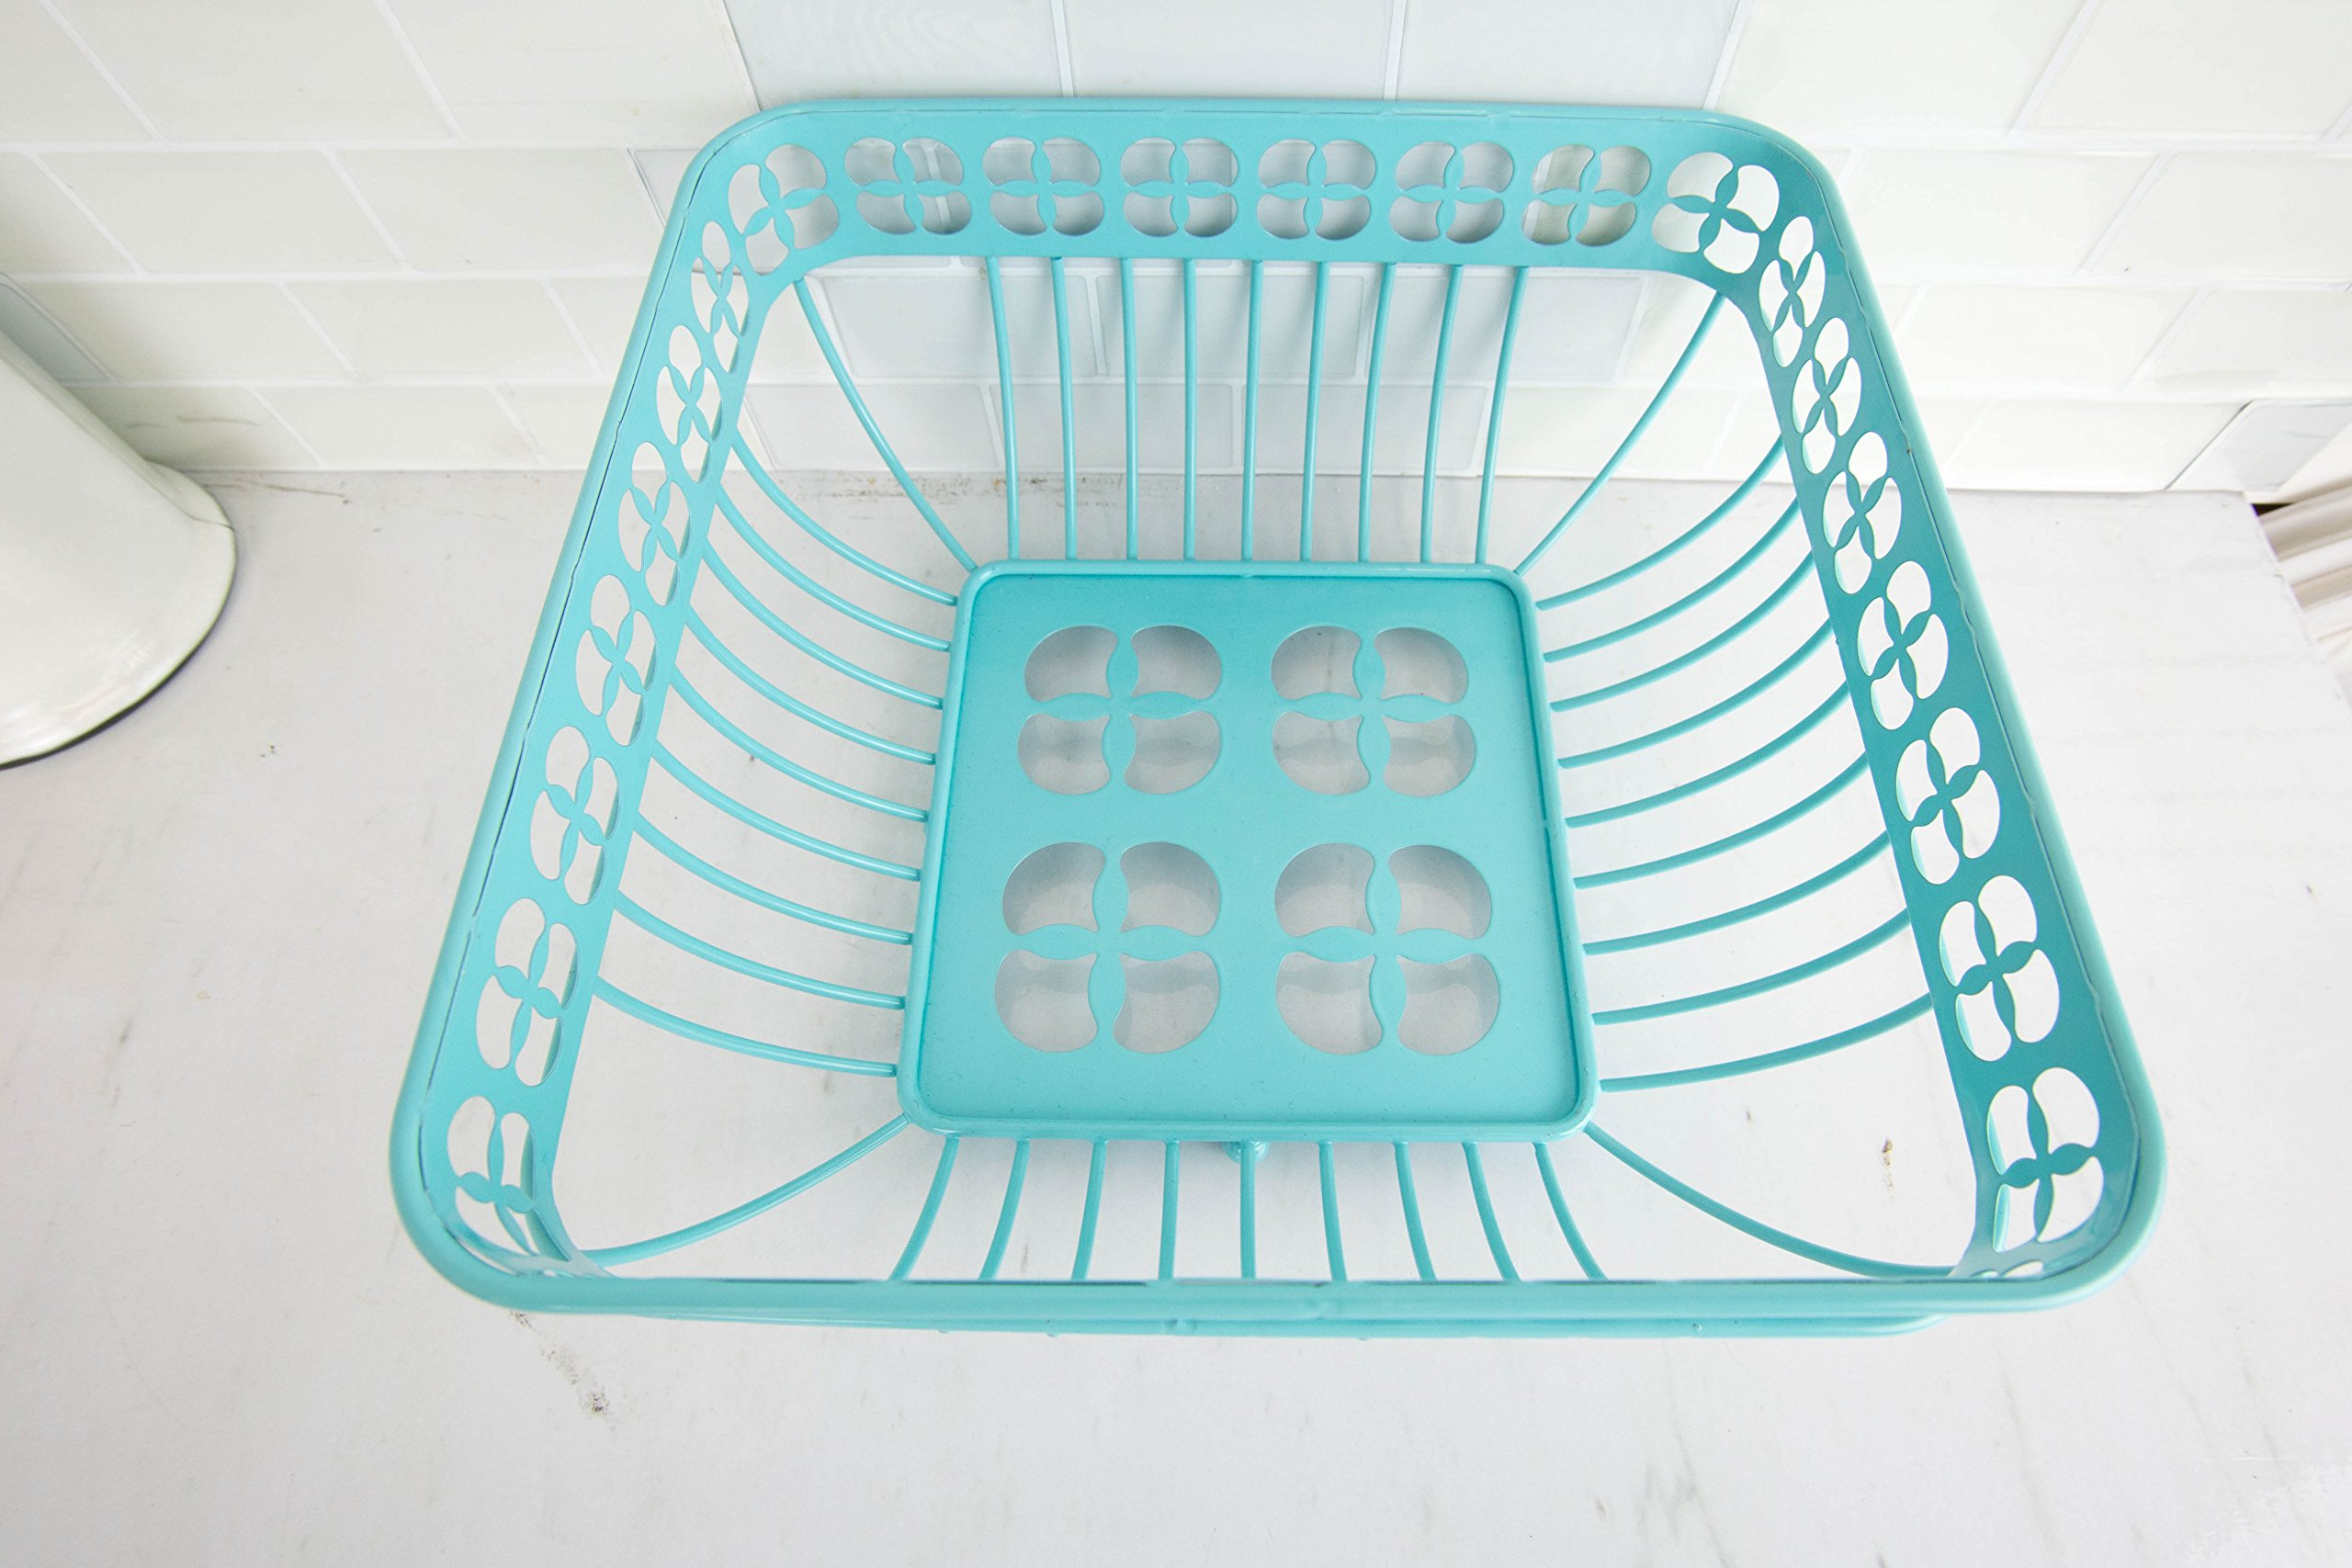 Home Basics Trinity Fruit Basket Square, Turquoise by Home Basics (Image #2)